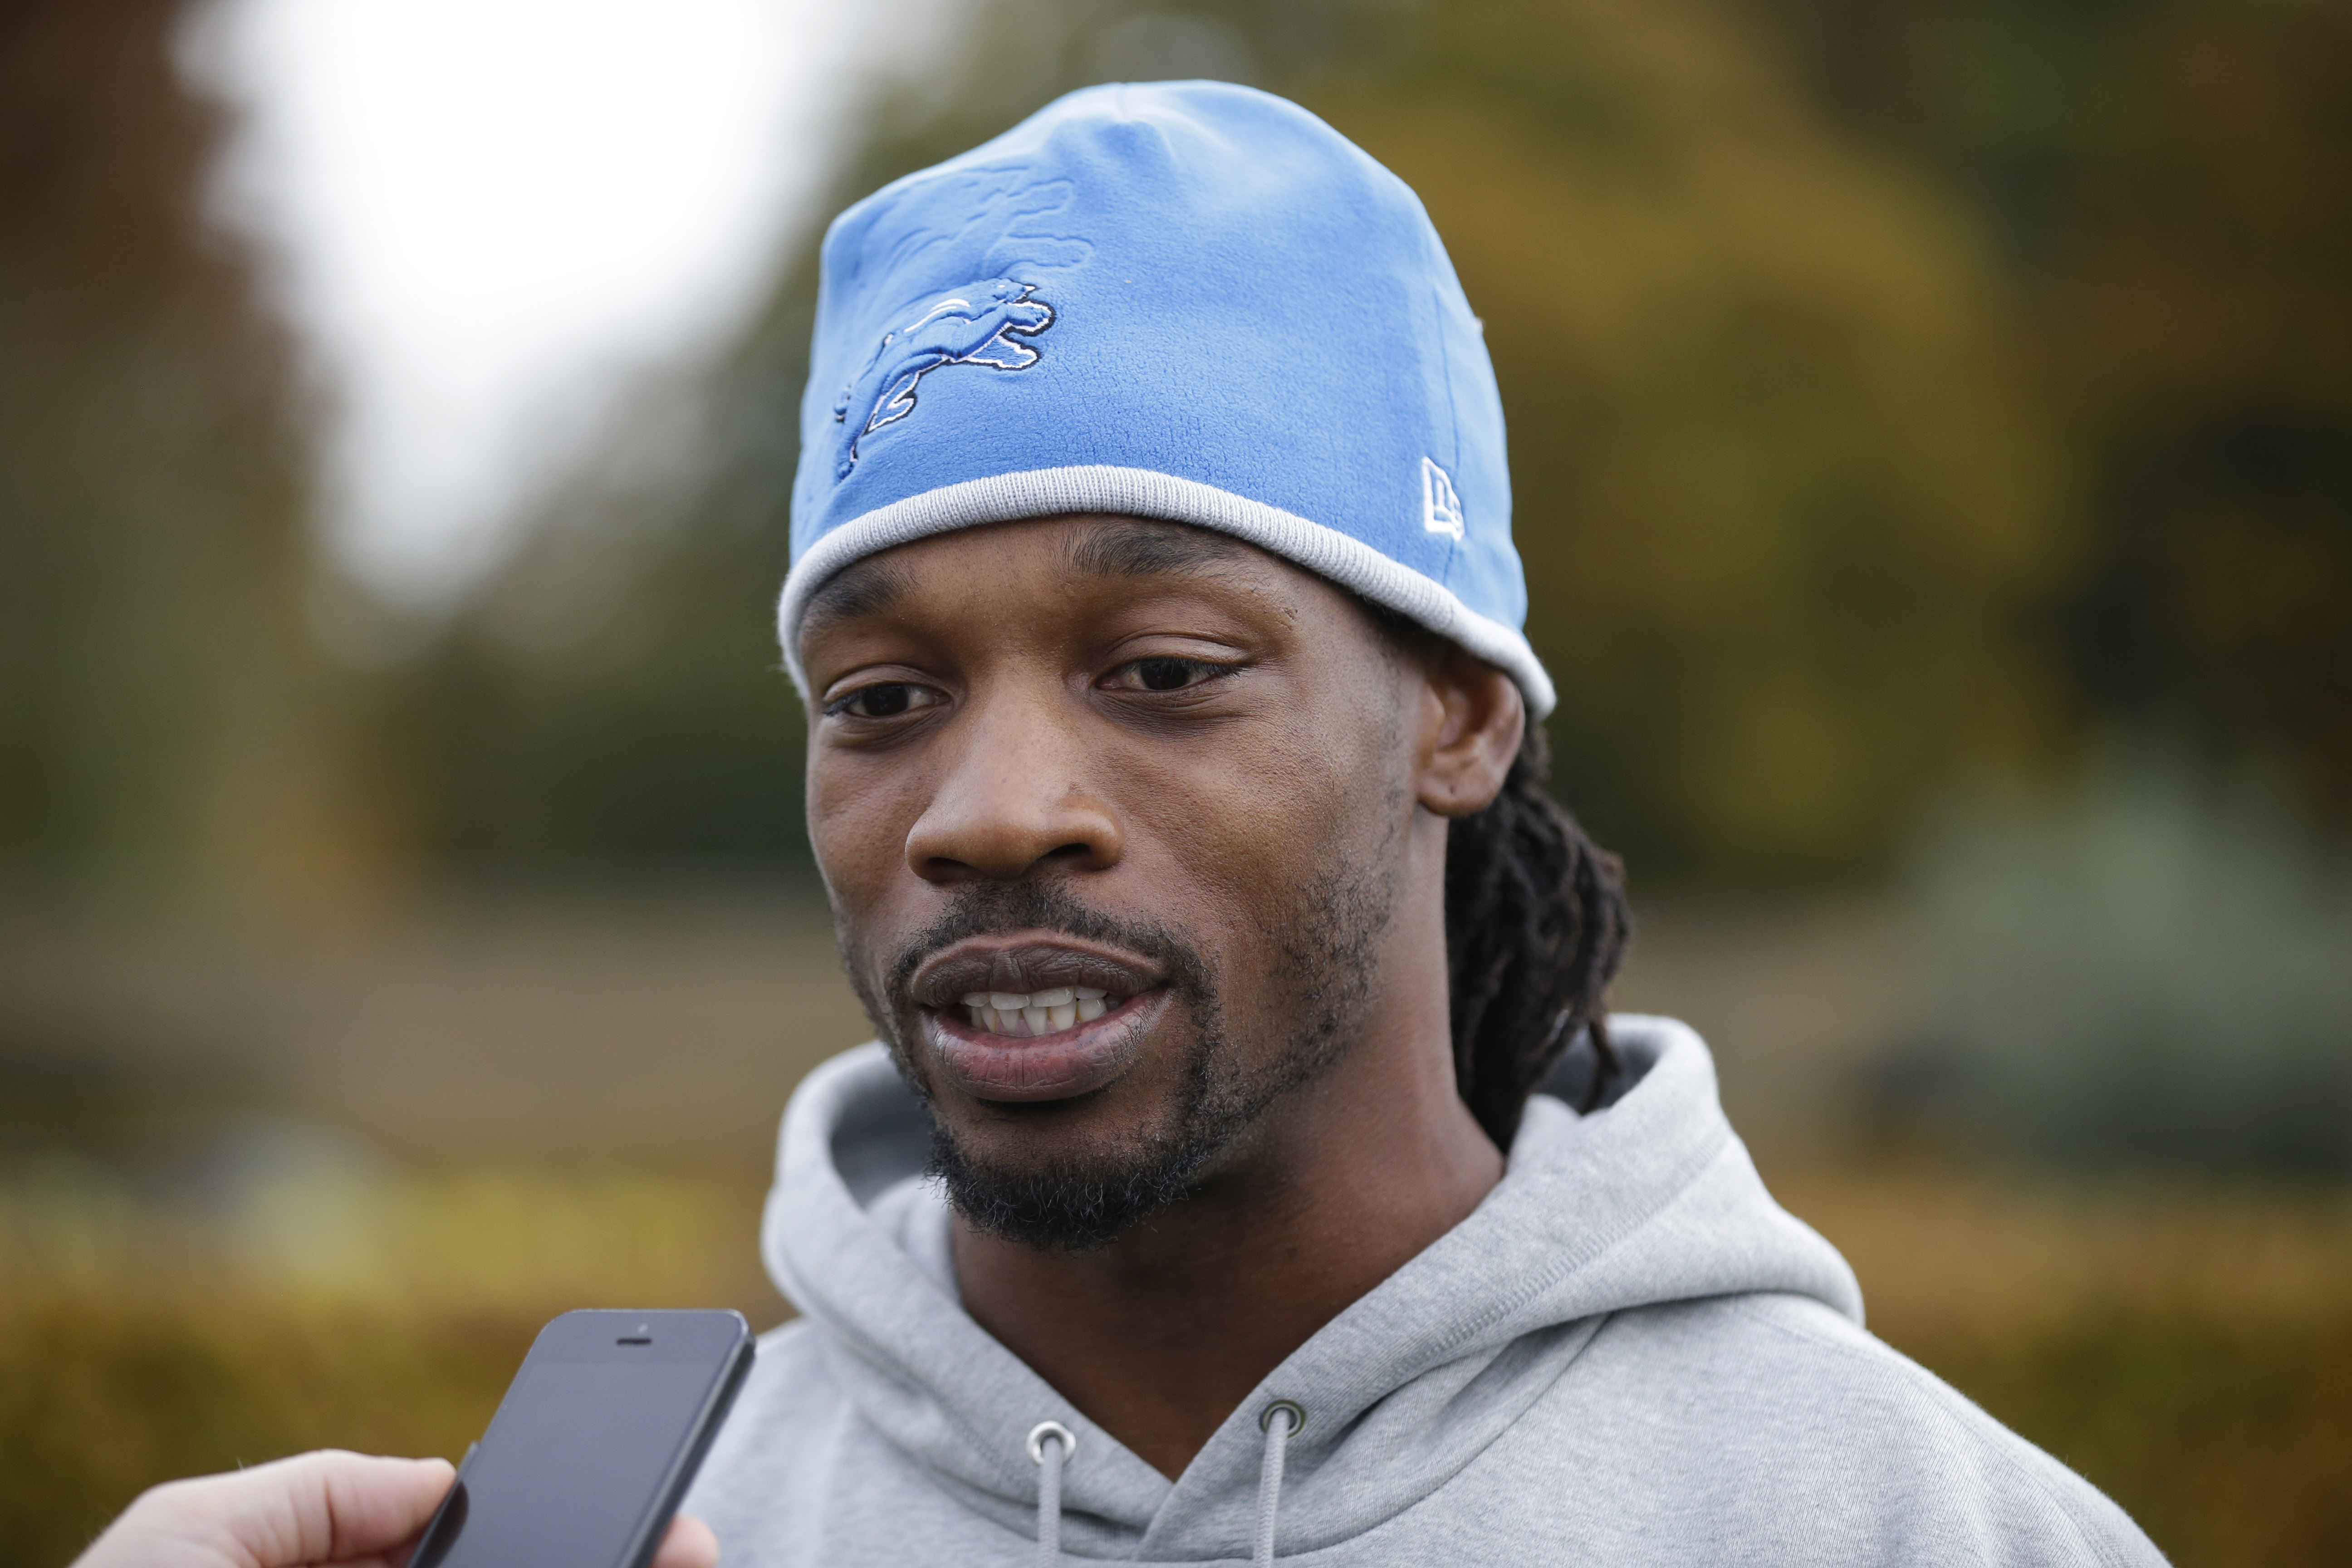 FILE - In this Oct. 28, 2015, file photo, Detroit Lions cornerback Rashean Mathis speaks to the media at the Grove Hotel in Chandler's Cross, England. Mathis recognizes that a concussion is a brain injury. His friends and family, though, did not seem to k